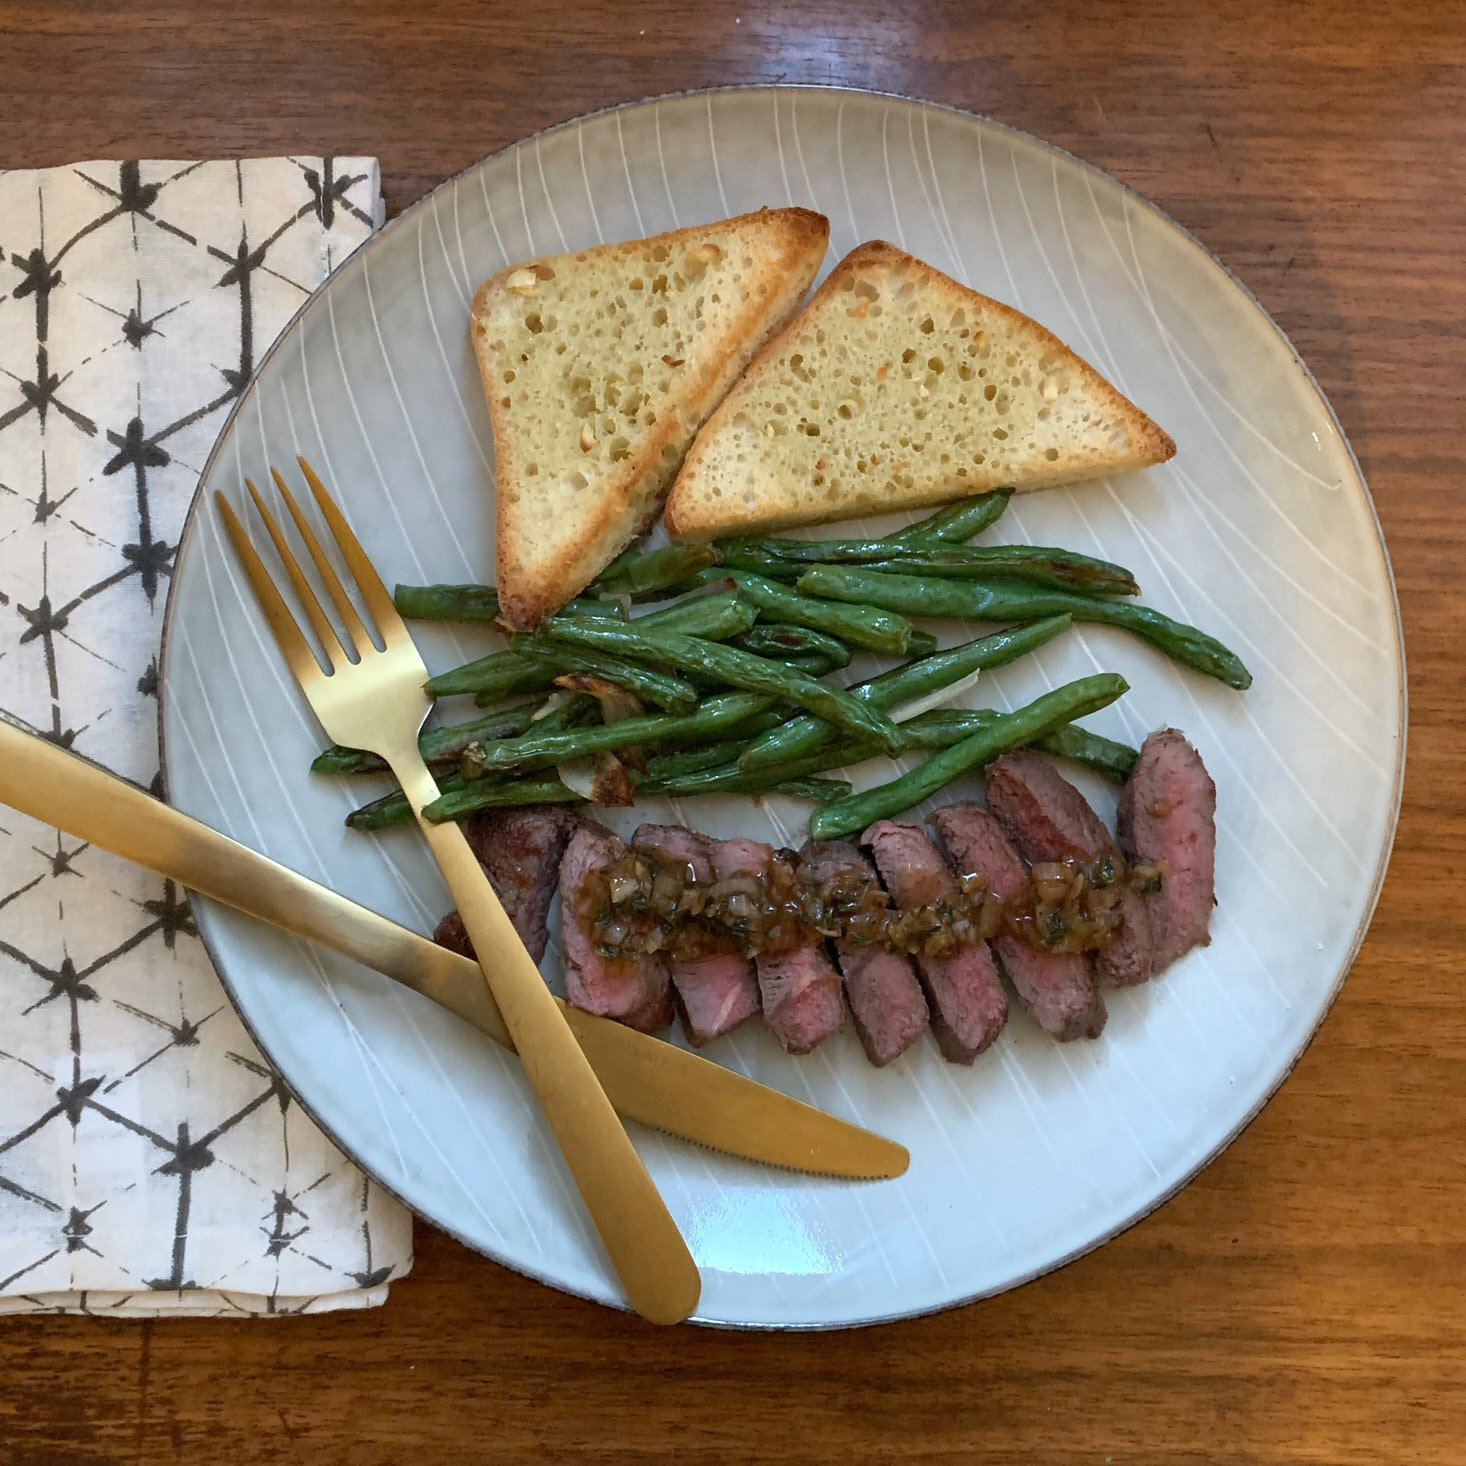 Completed Party Thyme Steak meal on plate